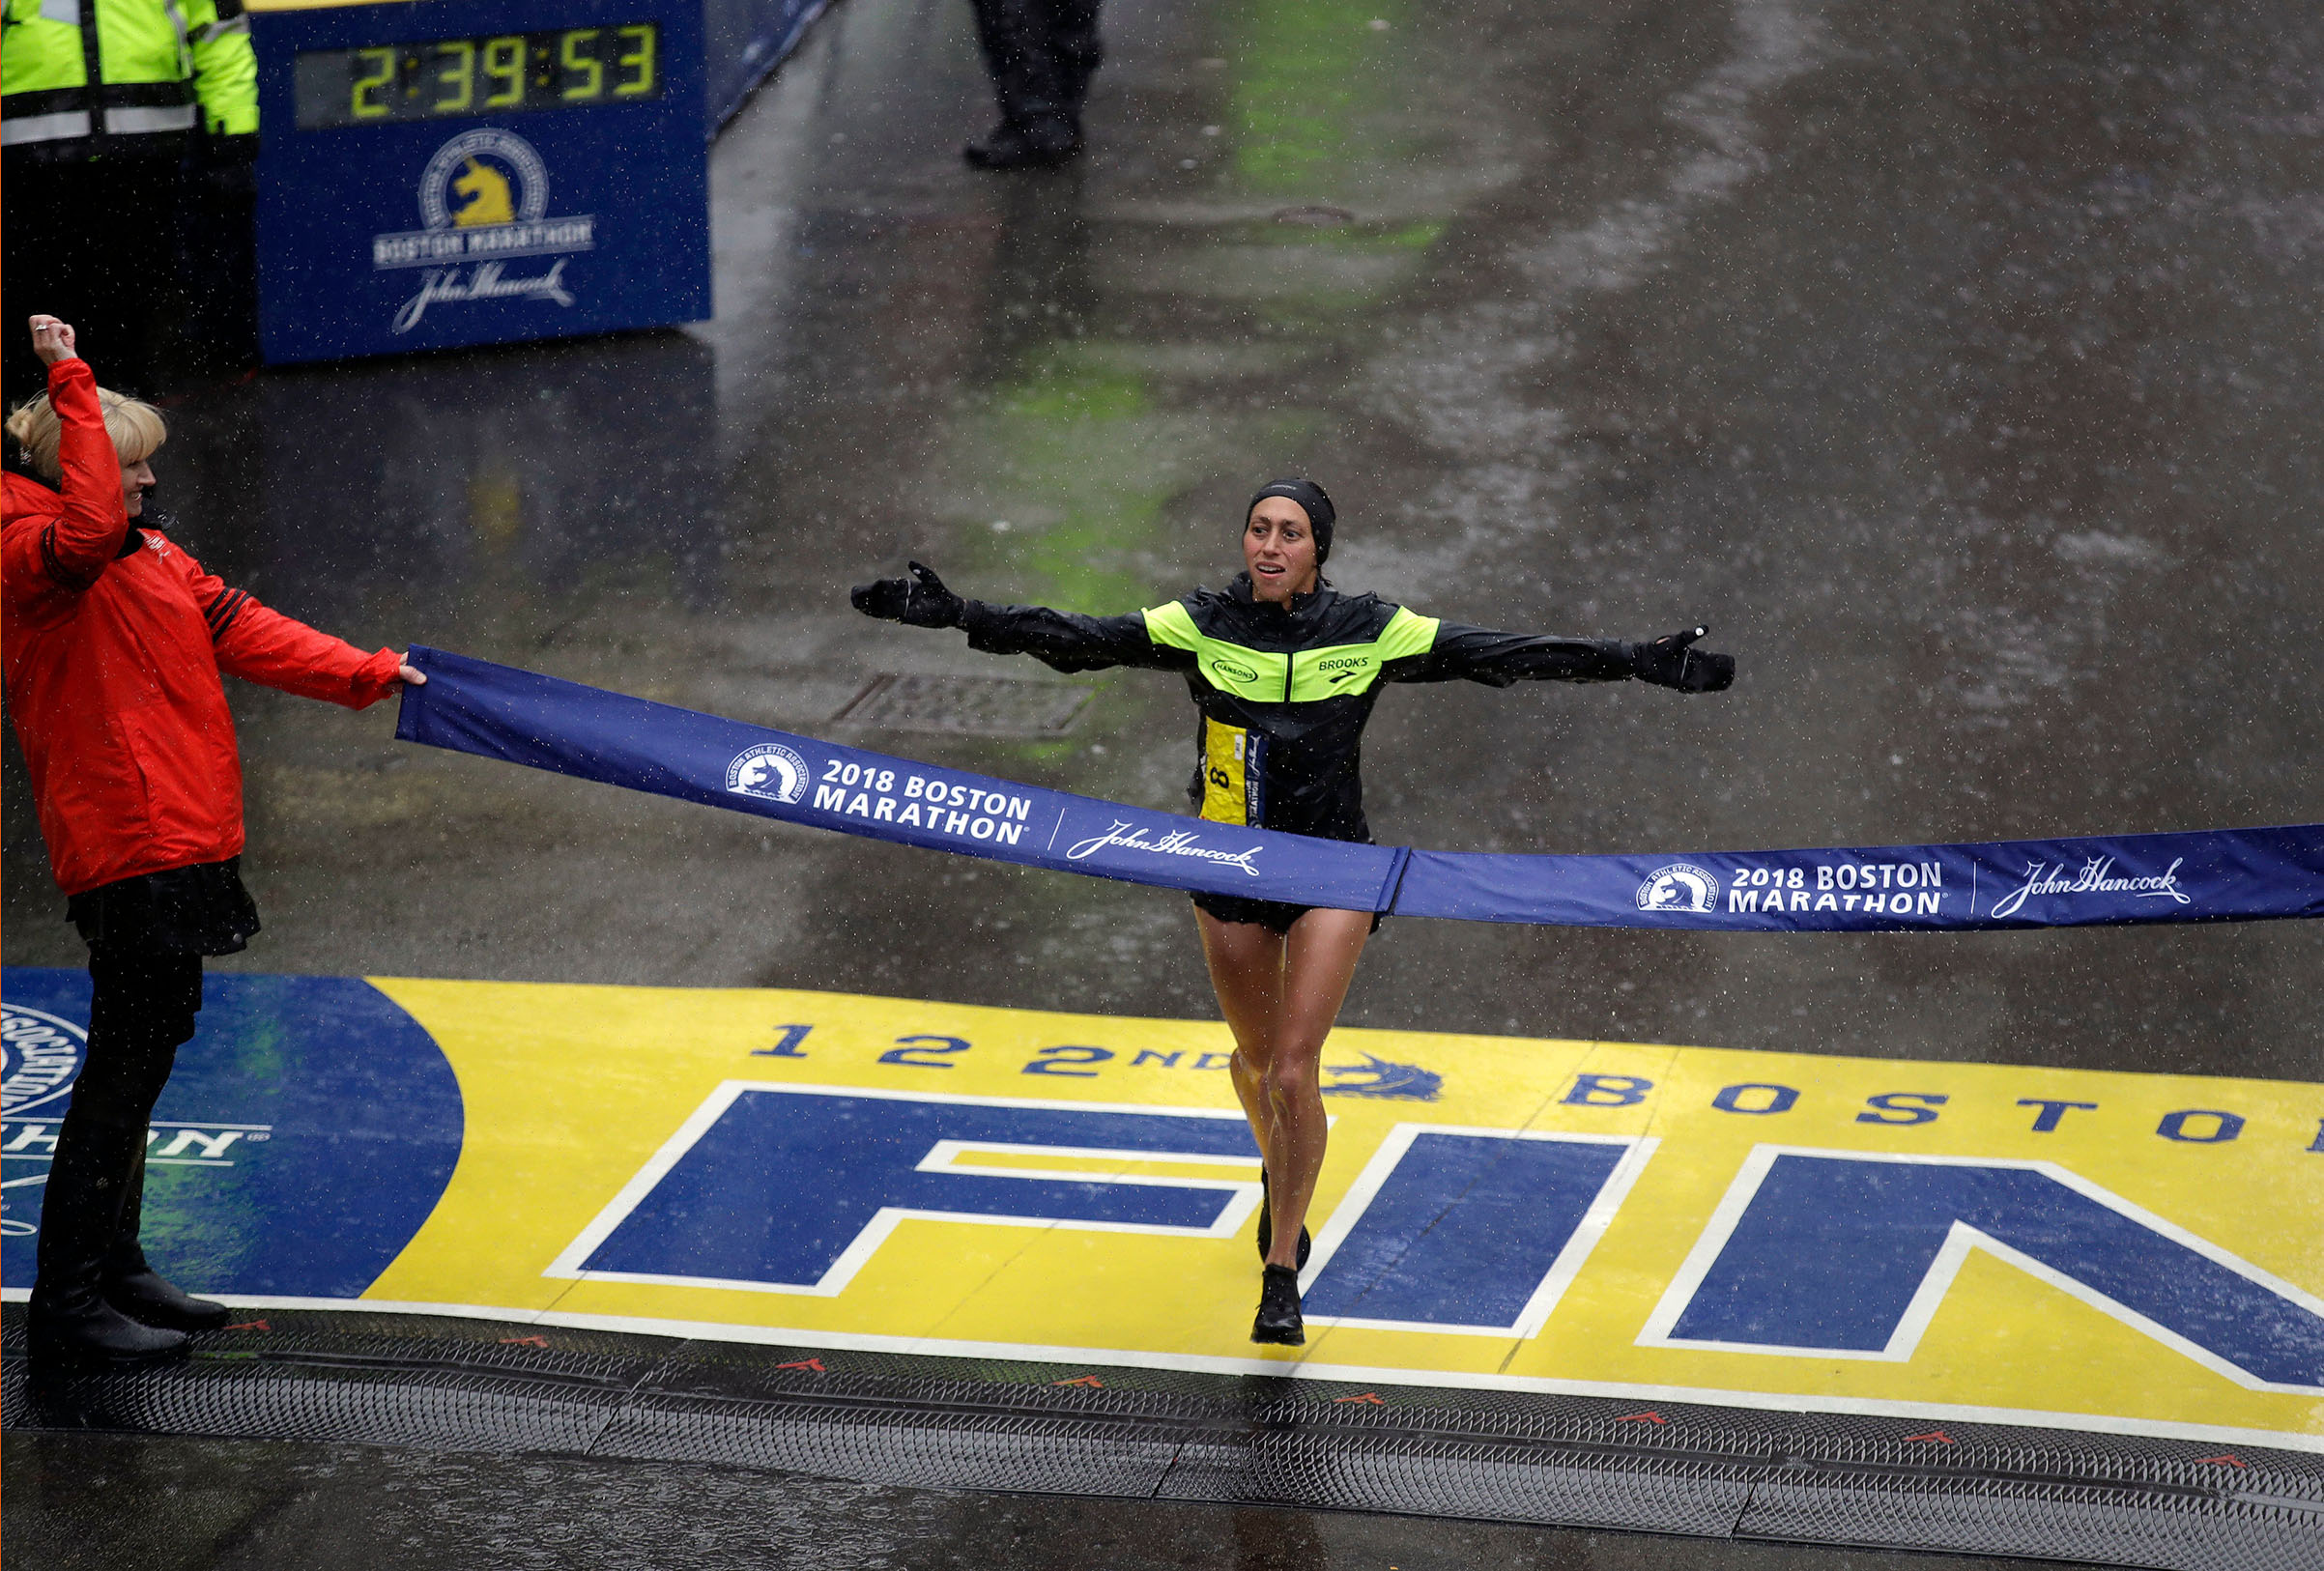 Desiree Linden, of Washington, Mich., wins the women's division of the 122nd Boston Marathon, in Boston on April 16, 2018.